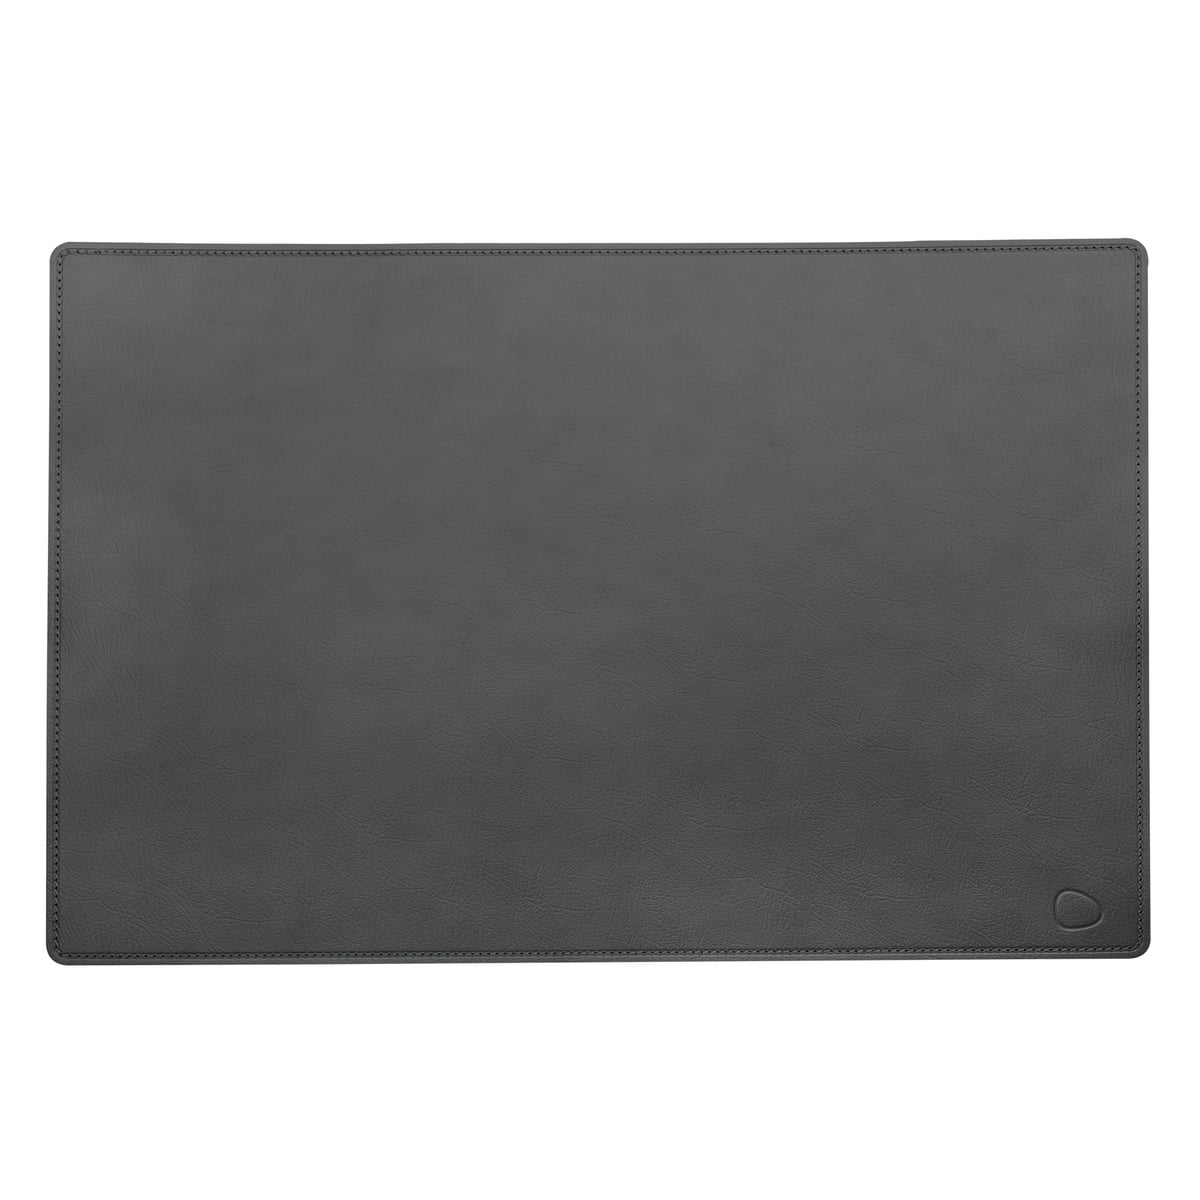 Work Mat Square L 54 X 74 Cm Made Of Cloud Leather In Anthracite